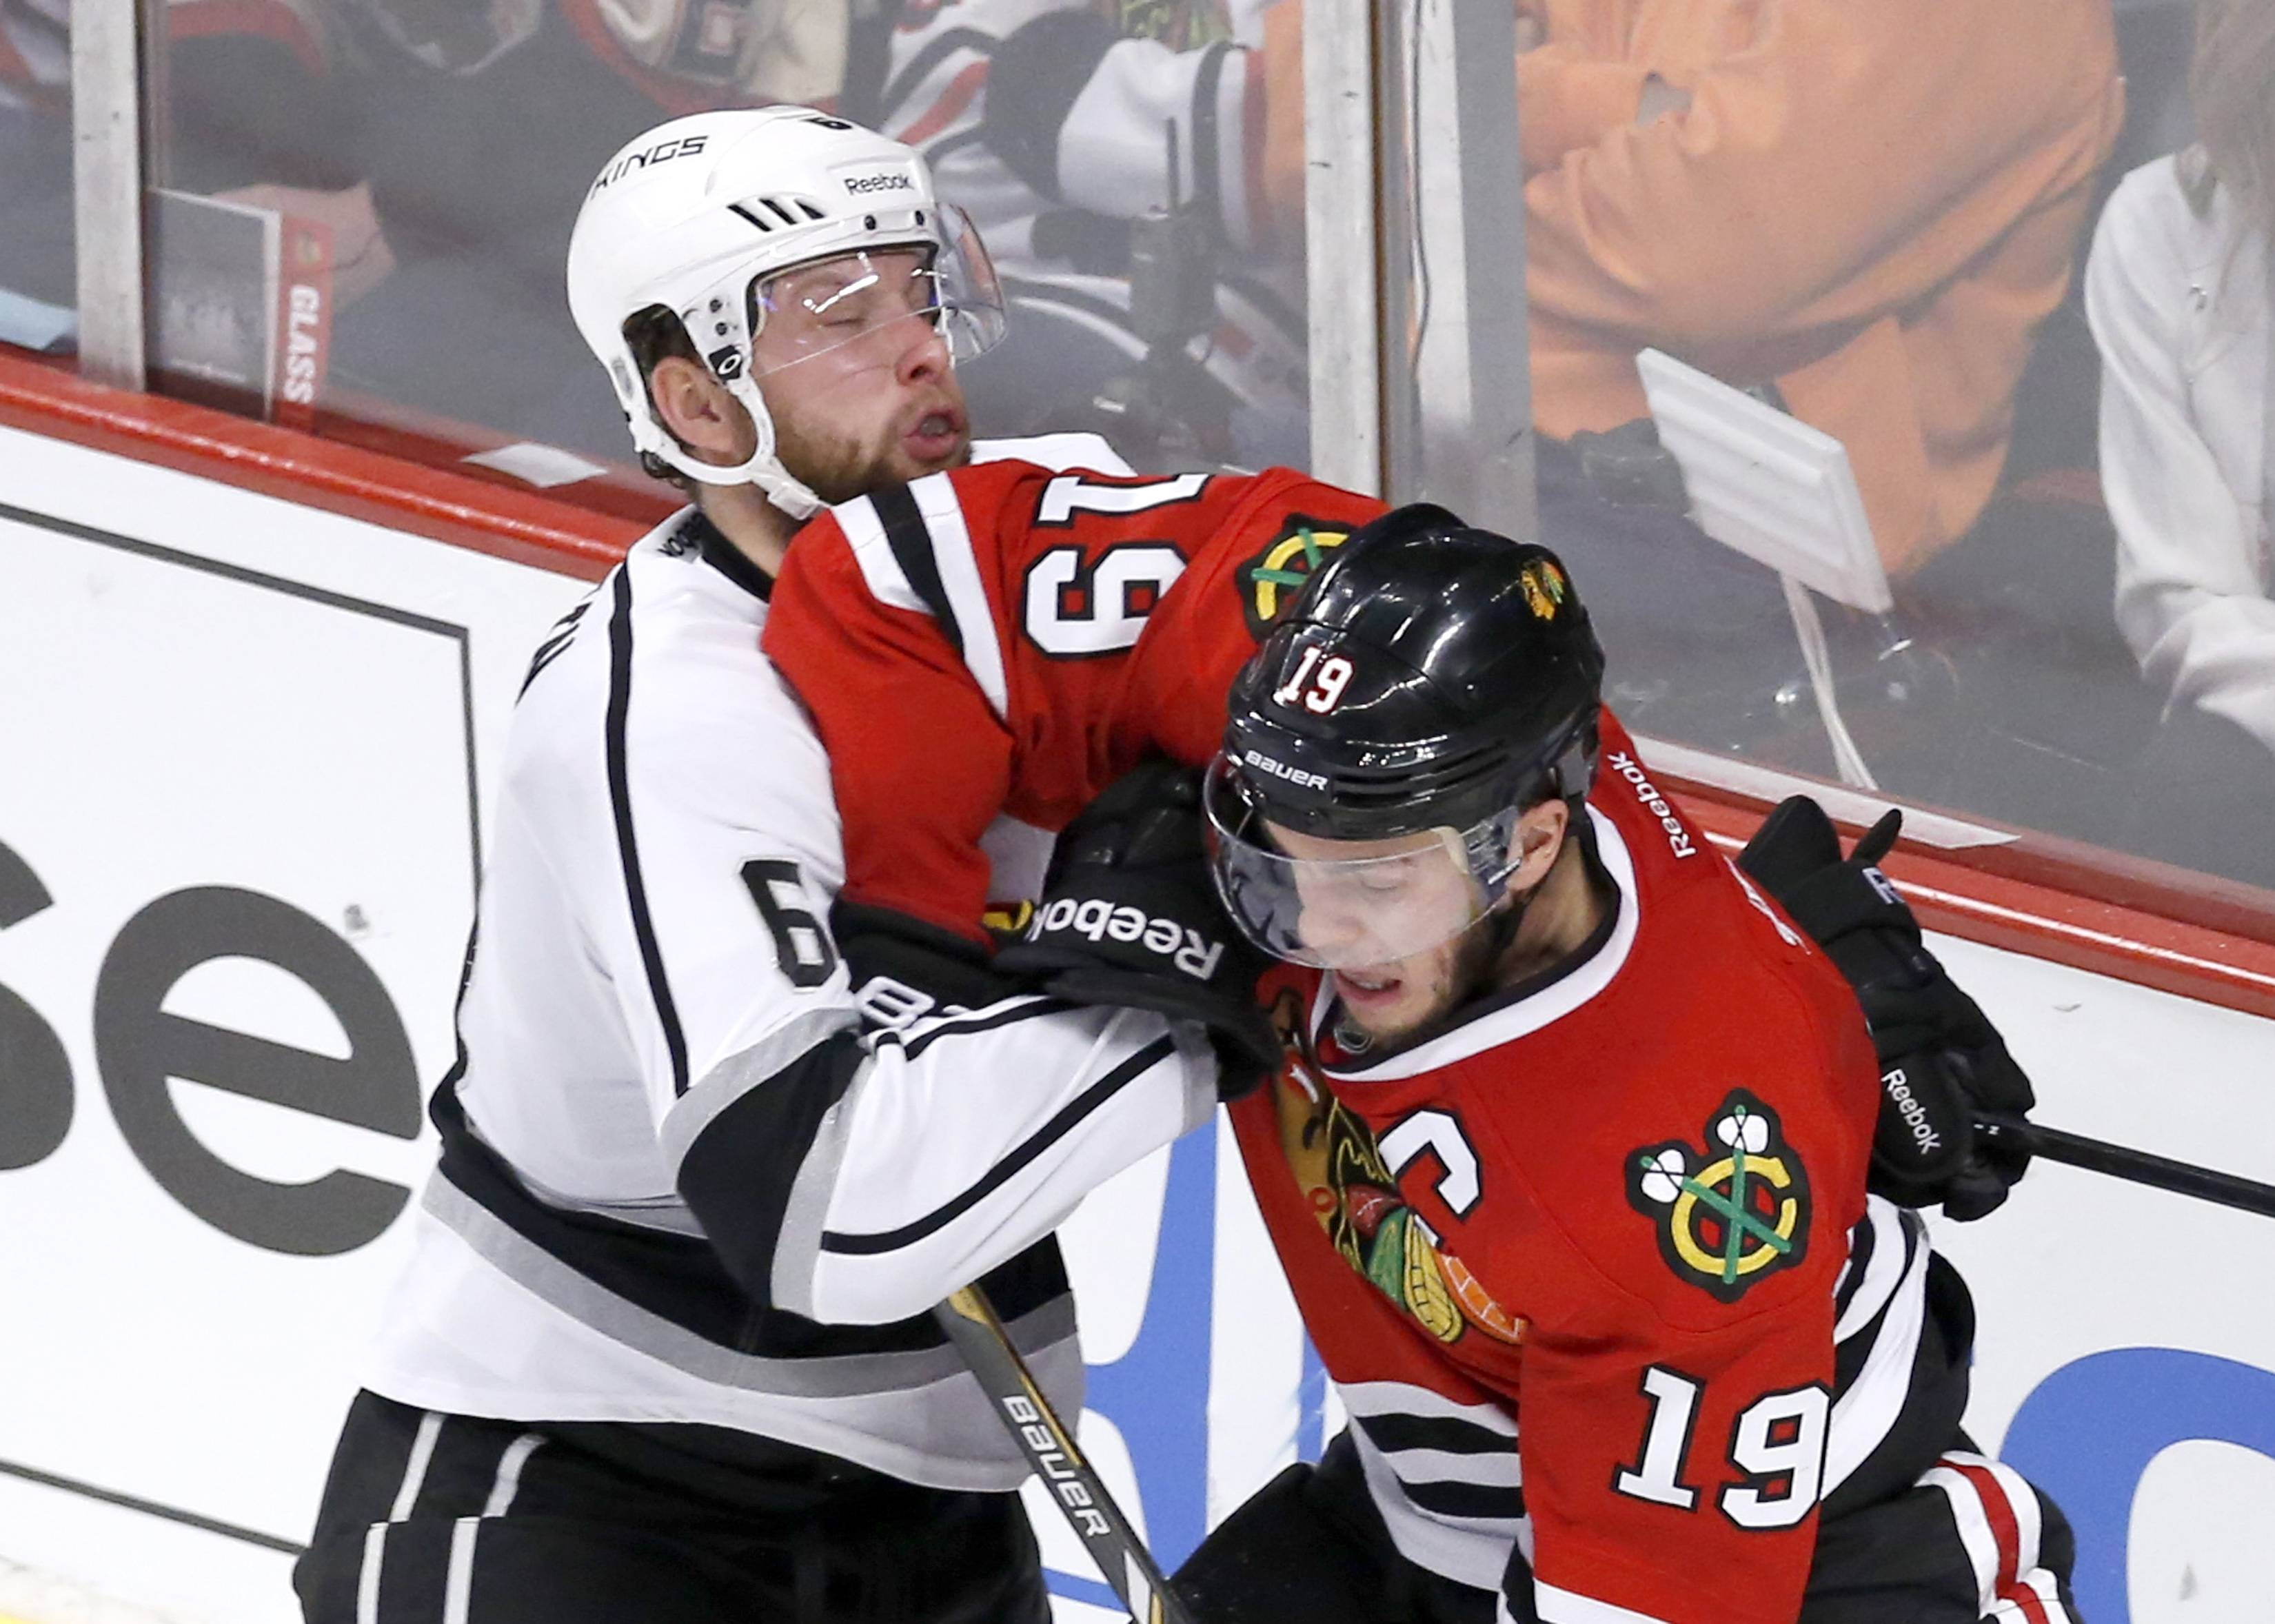 Chicago Blackhawks center Jonathan Toews (19) battles Los Angeles Kings defenseman Jake Muzzin during the second period of Game 1 of the Western Conference finals in the NHL hockey Stanley Cup playoffs in Chicago on Sunday, May 18, 2014.